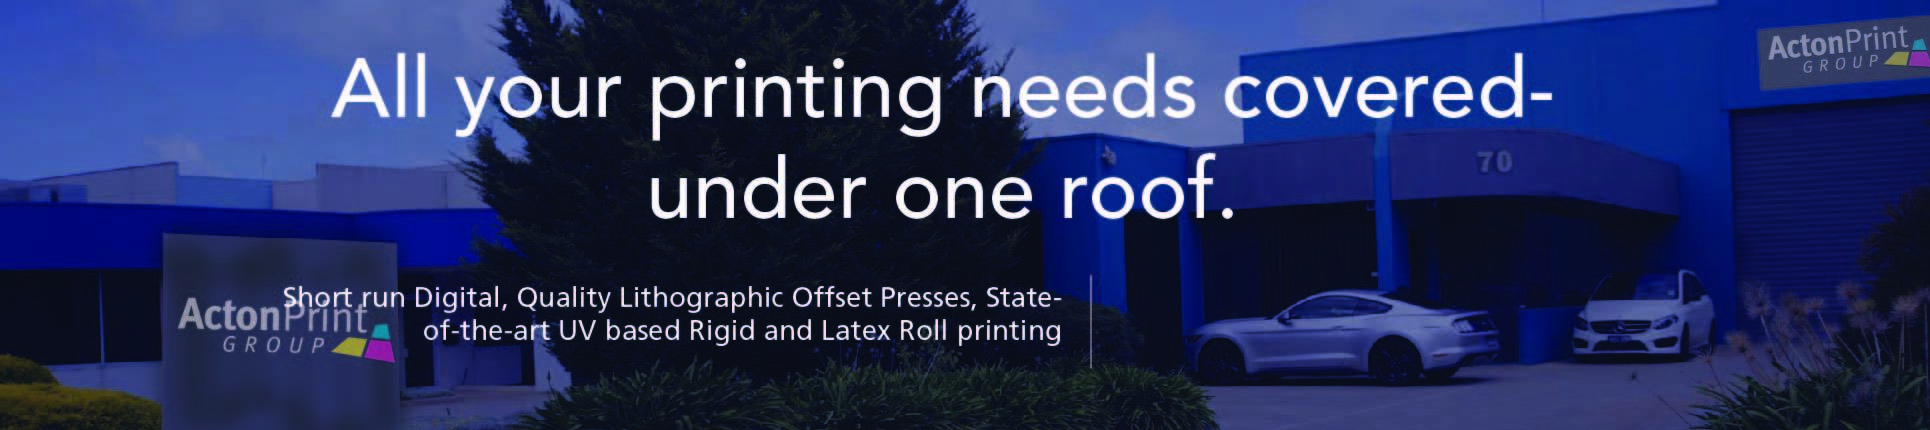 All Printing Needs Covered